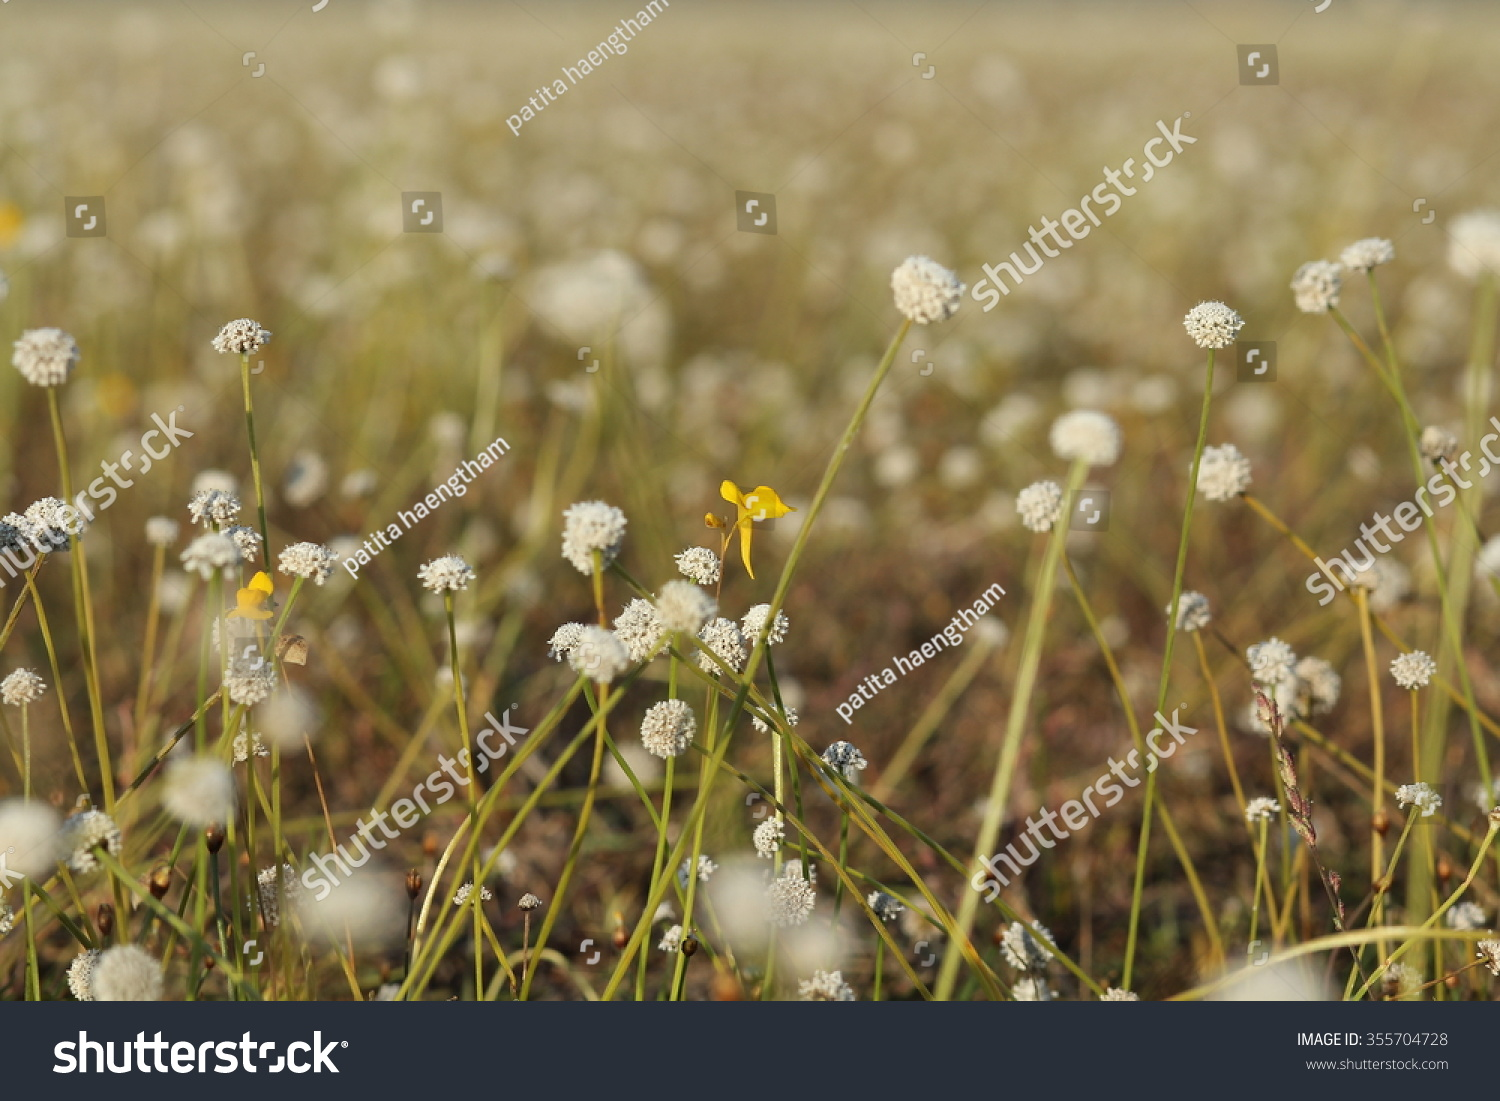 flowers nature background blur floral white vintage garden abstract ...